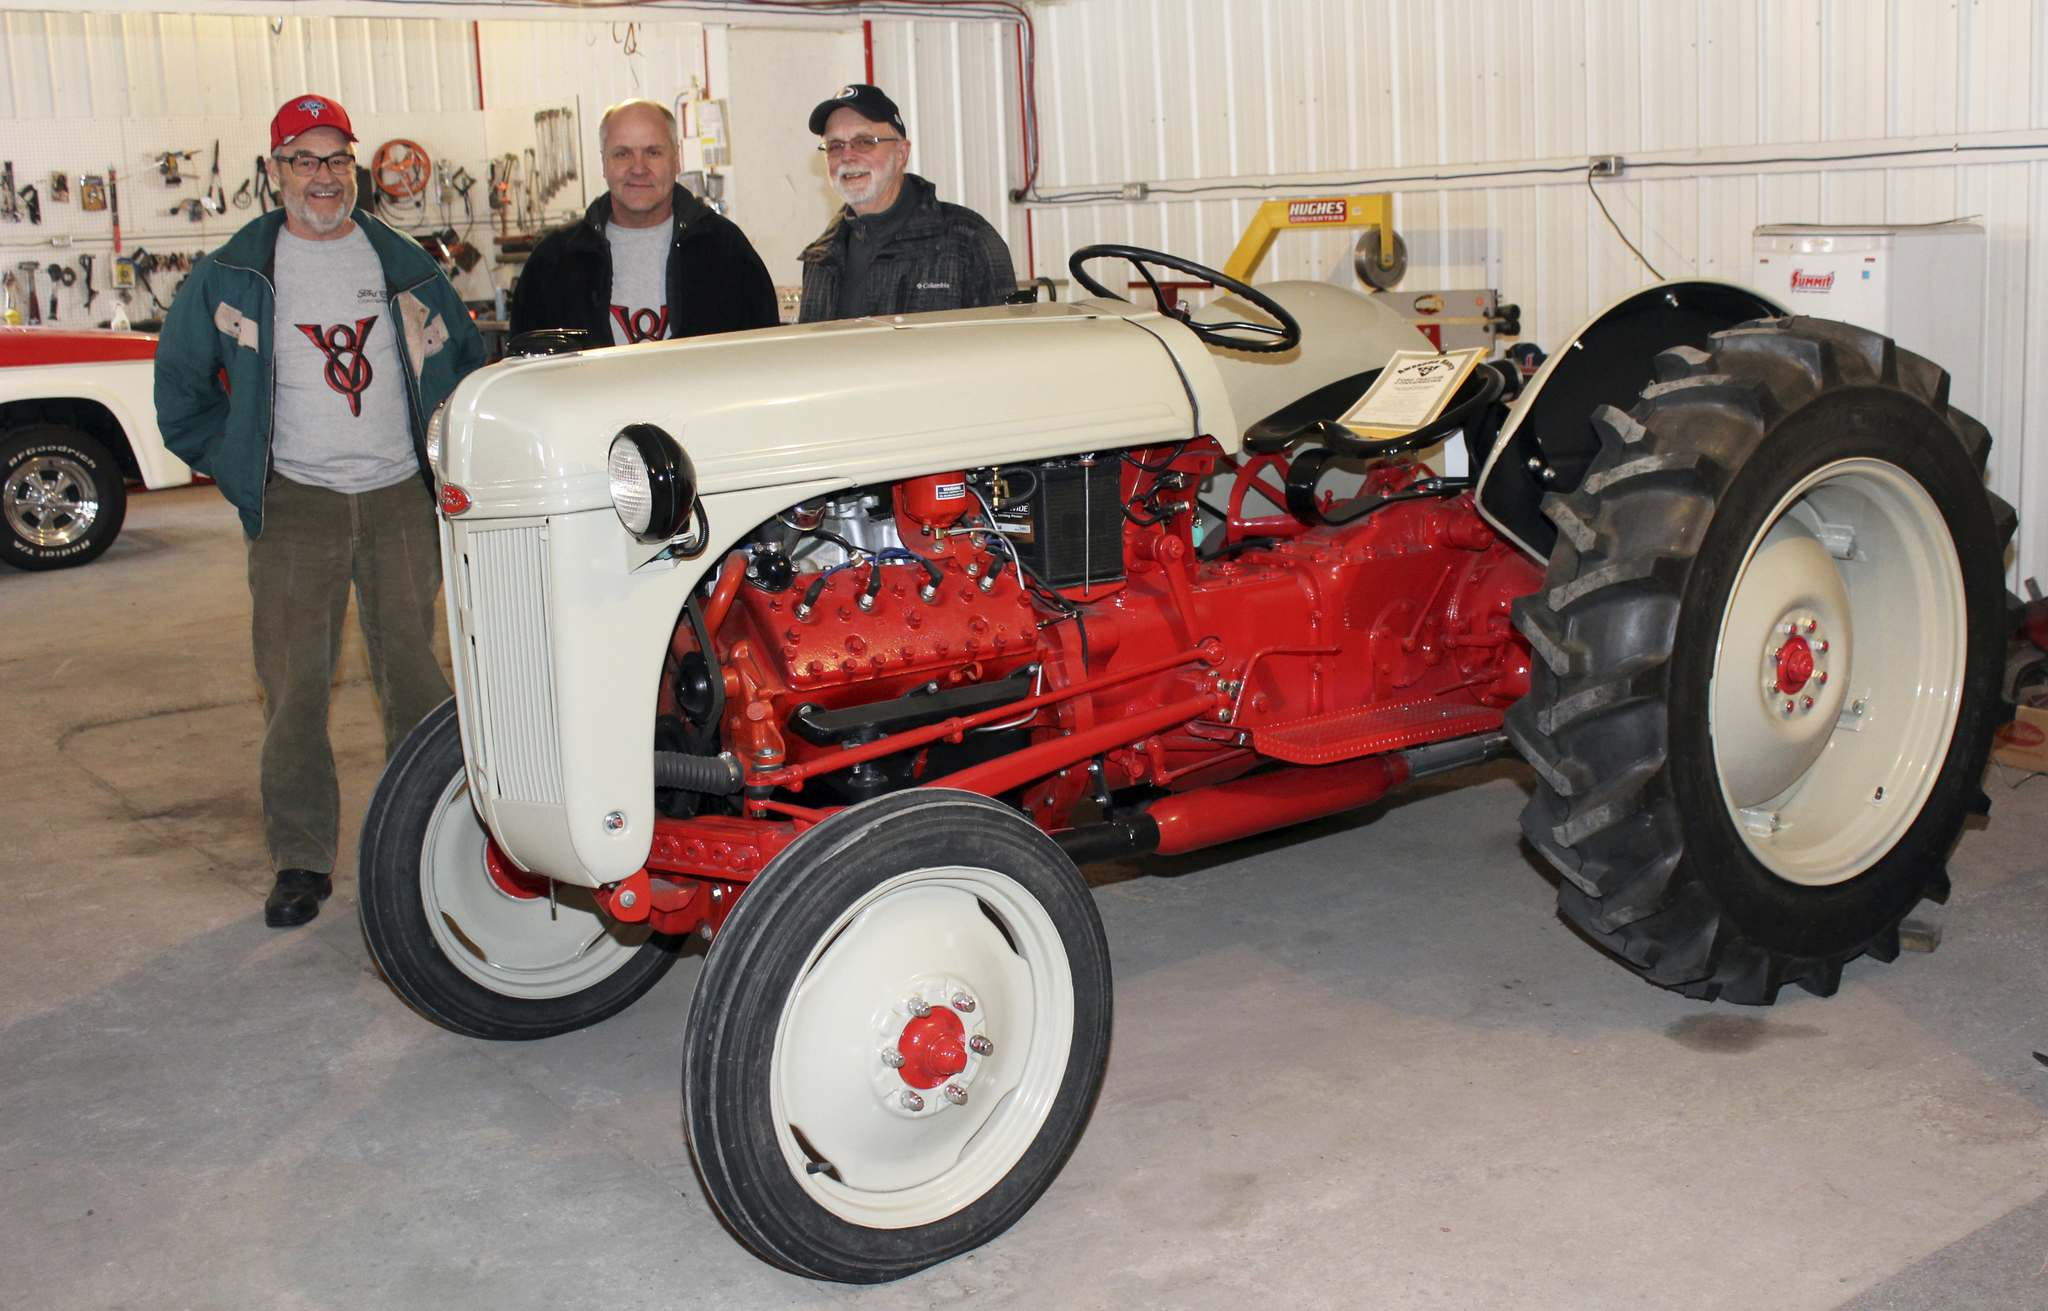 In 2012, Brian Burrows (left) bought this Ford 8N tractor that hadn't run in years. He enlisted the help of Rick Geisbrecht (centre) and Al Holmberg to find the parts and put in the elbow grease to get it working again. (Photos by Larry D'Argis / Winnipeg Free Press)